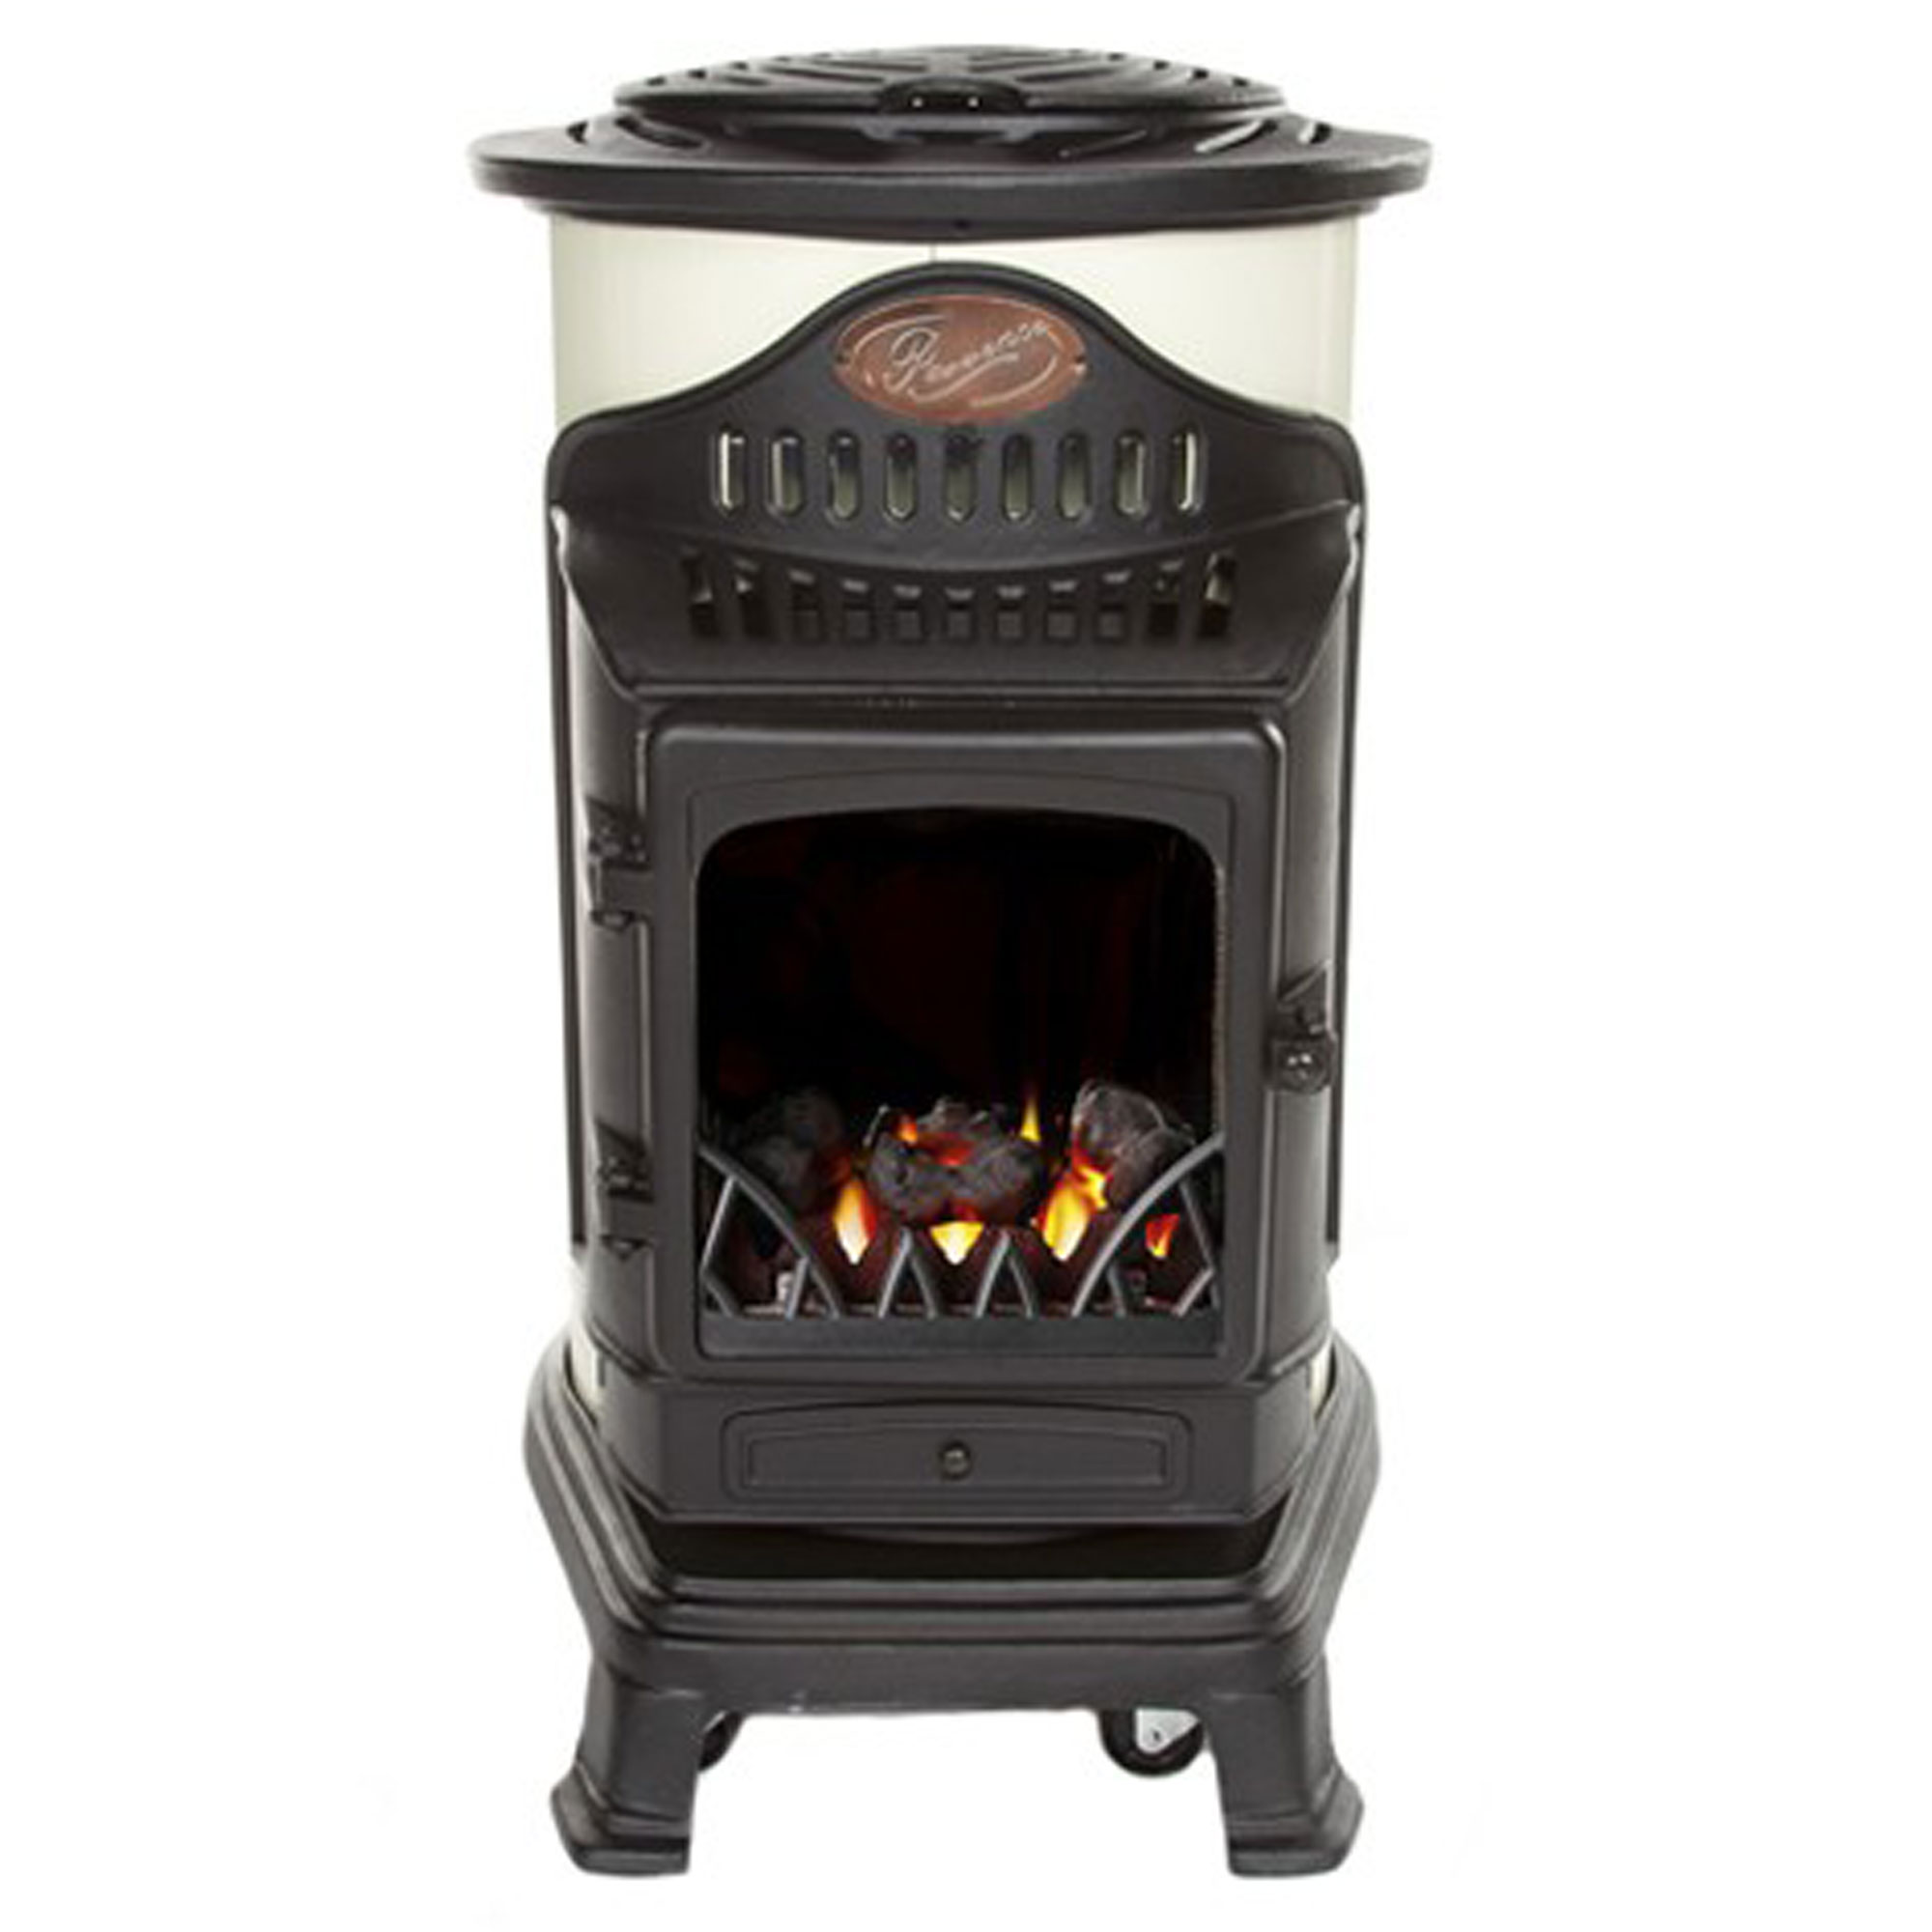 Provence Portable Gas Heater | Northants Gas Supplies